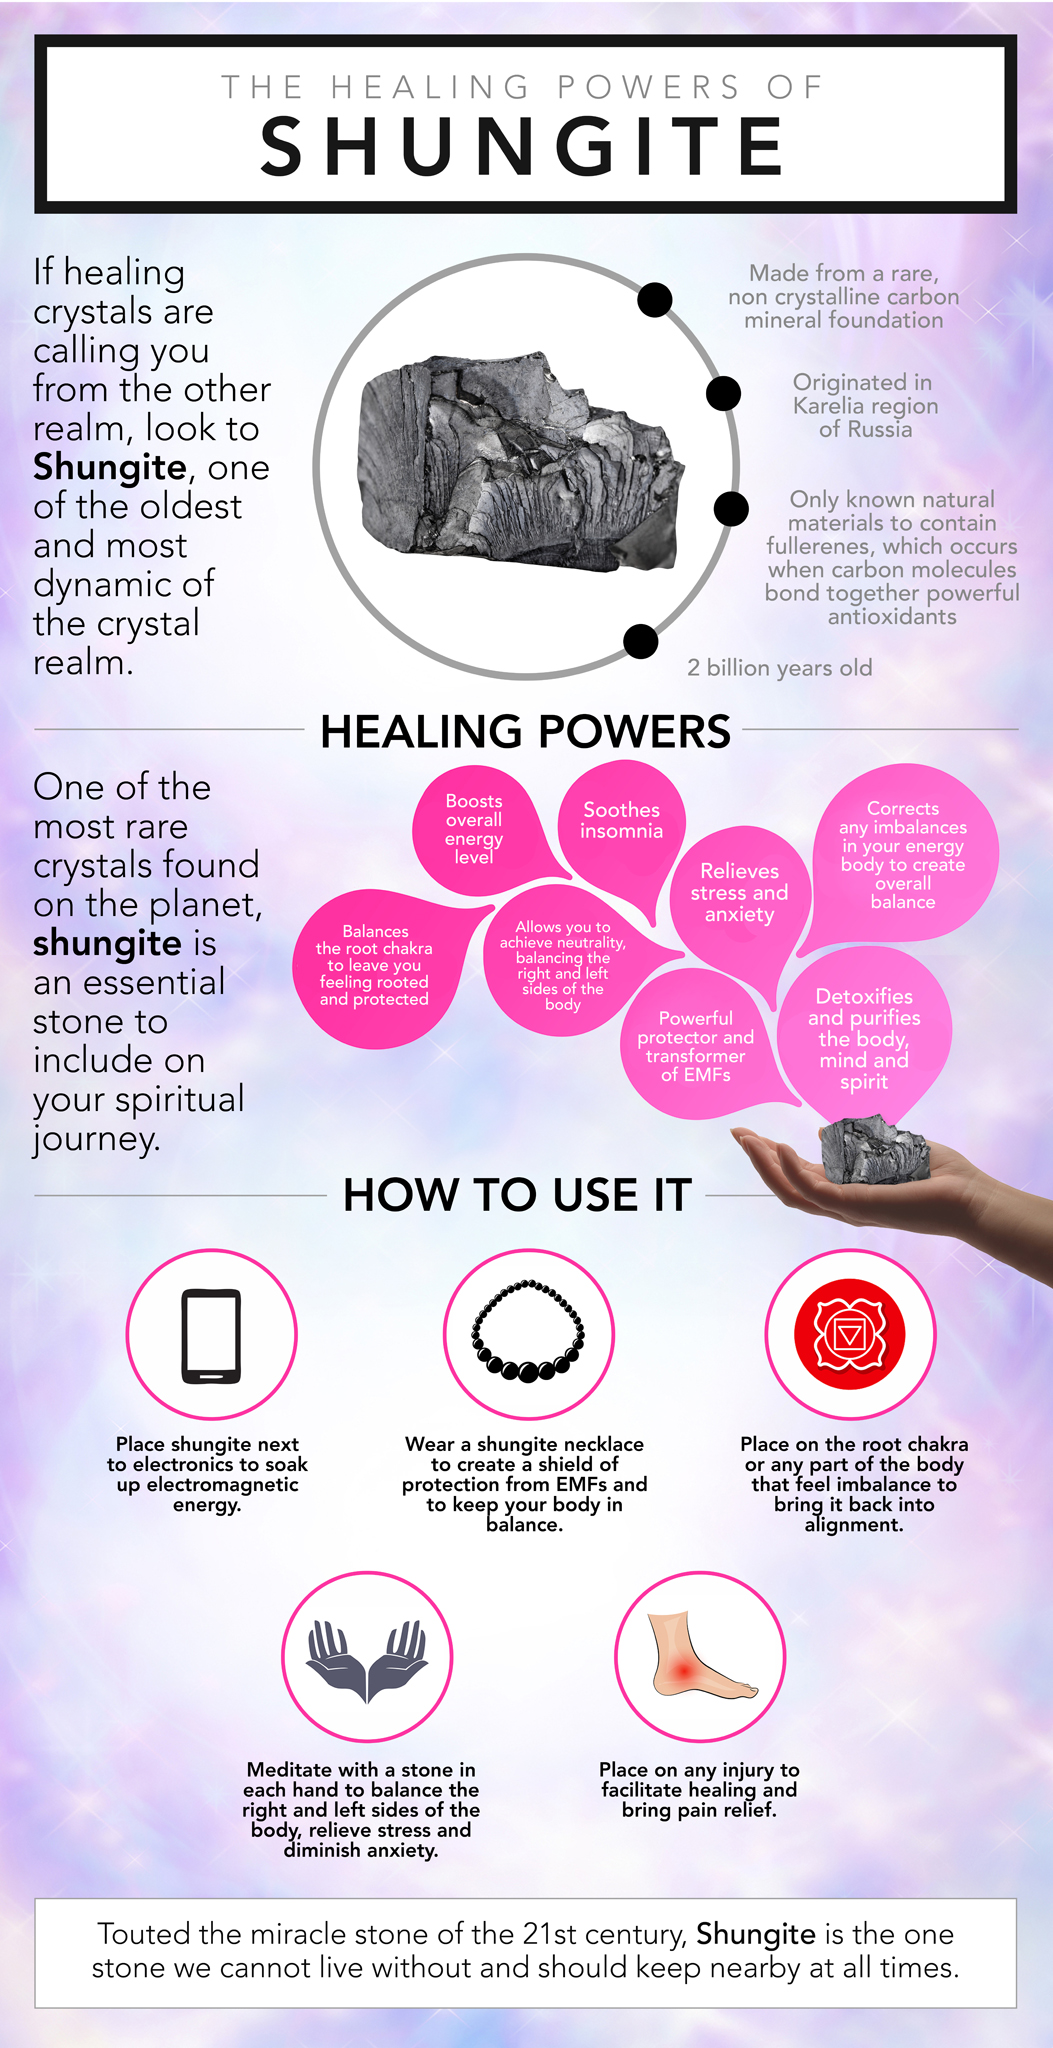 Shungite Benefits: Healing Power of Shungite Infographic